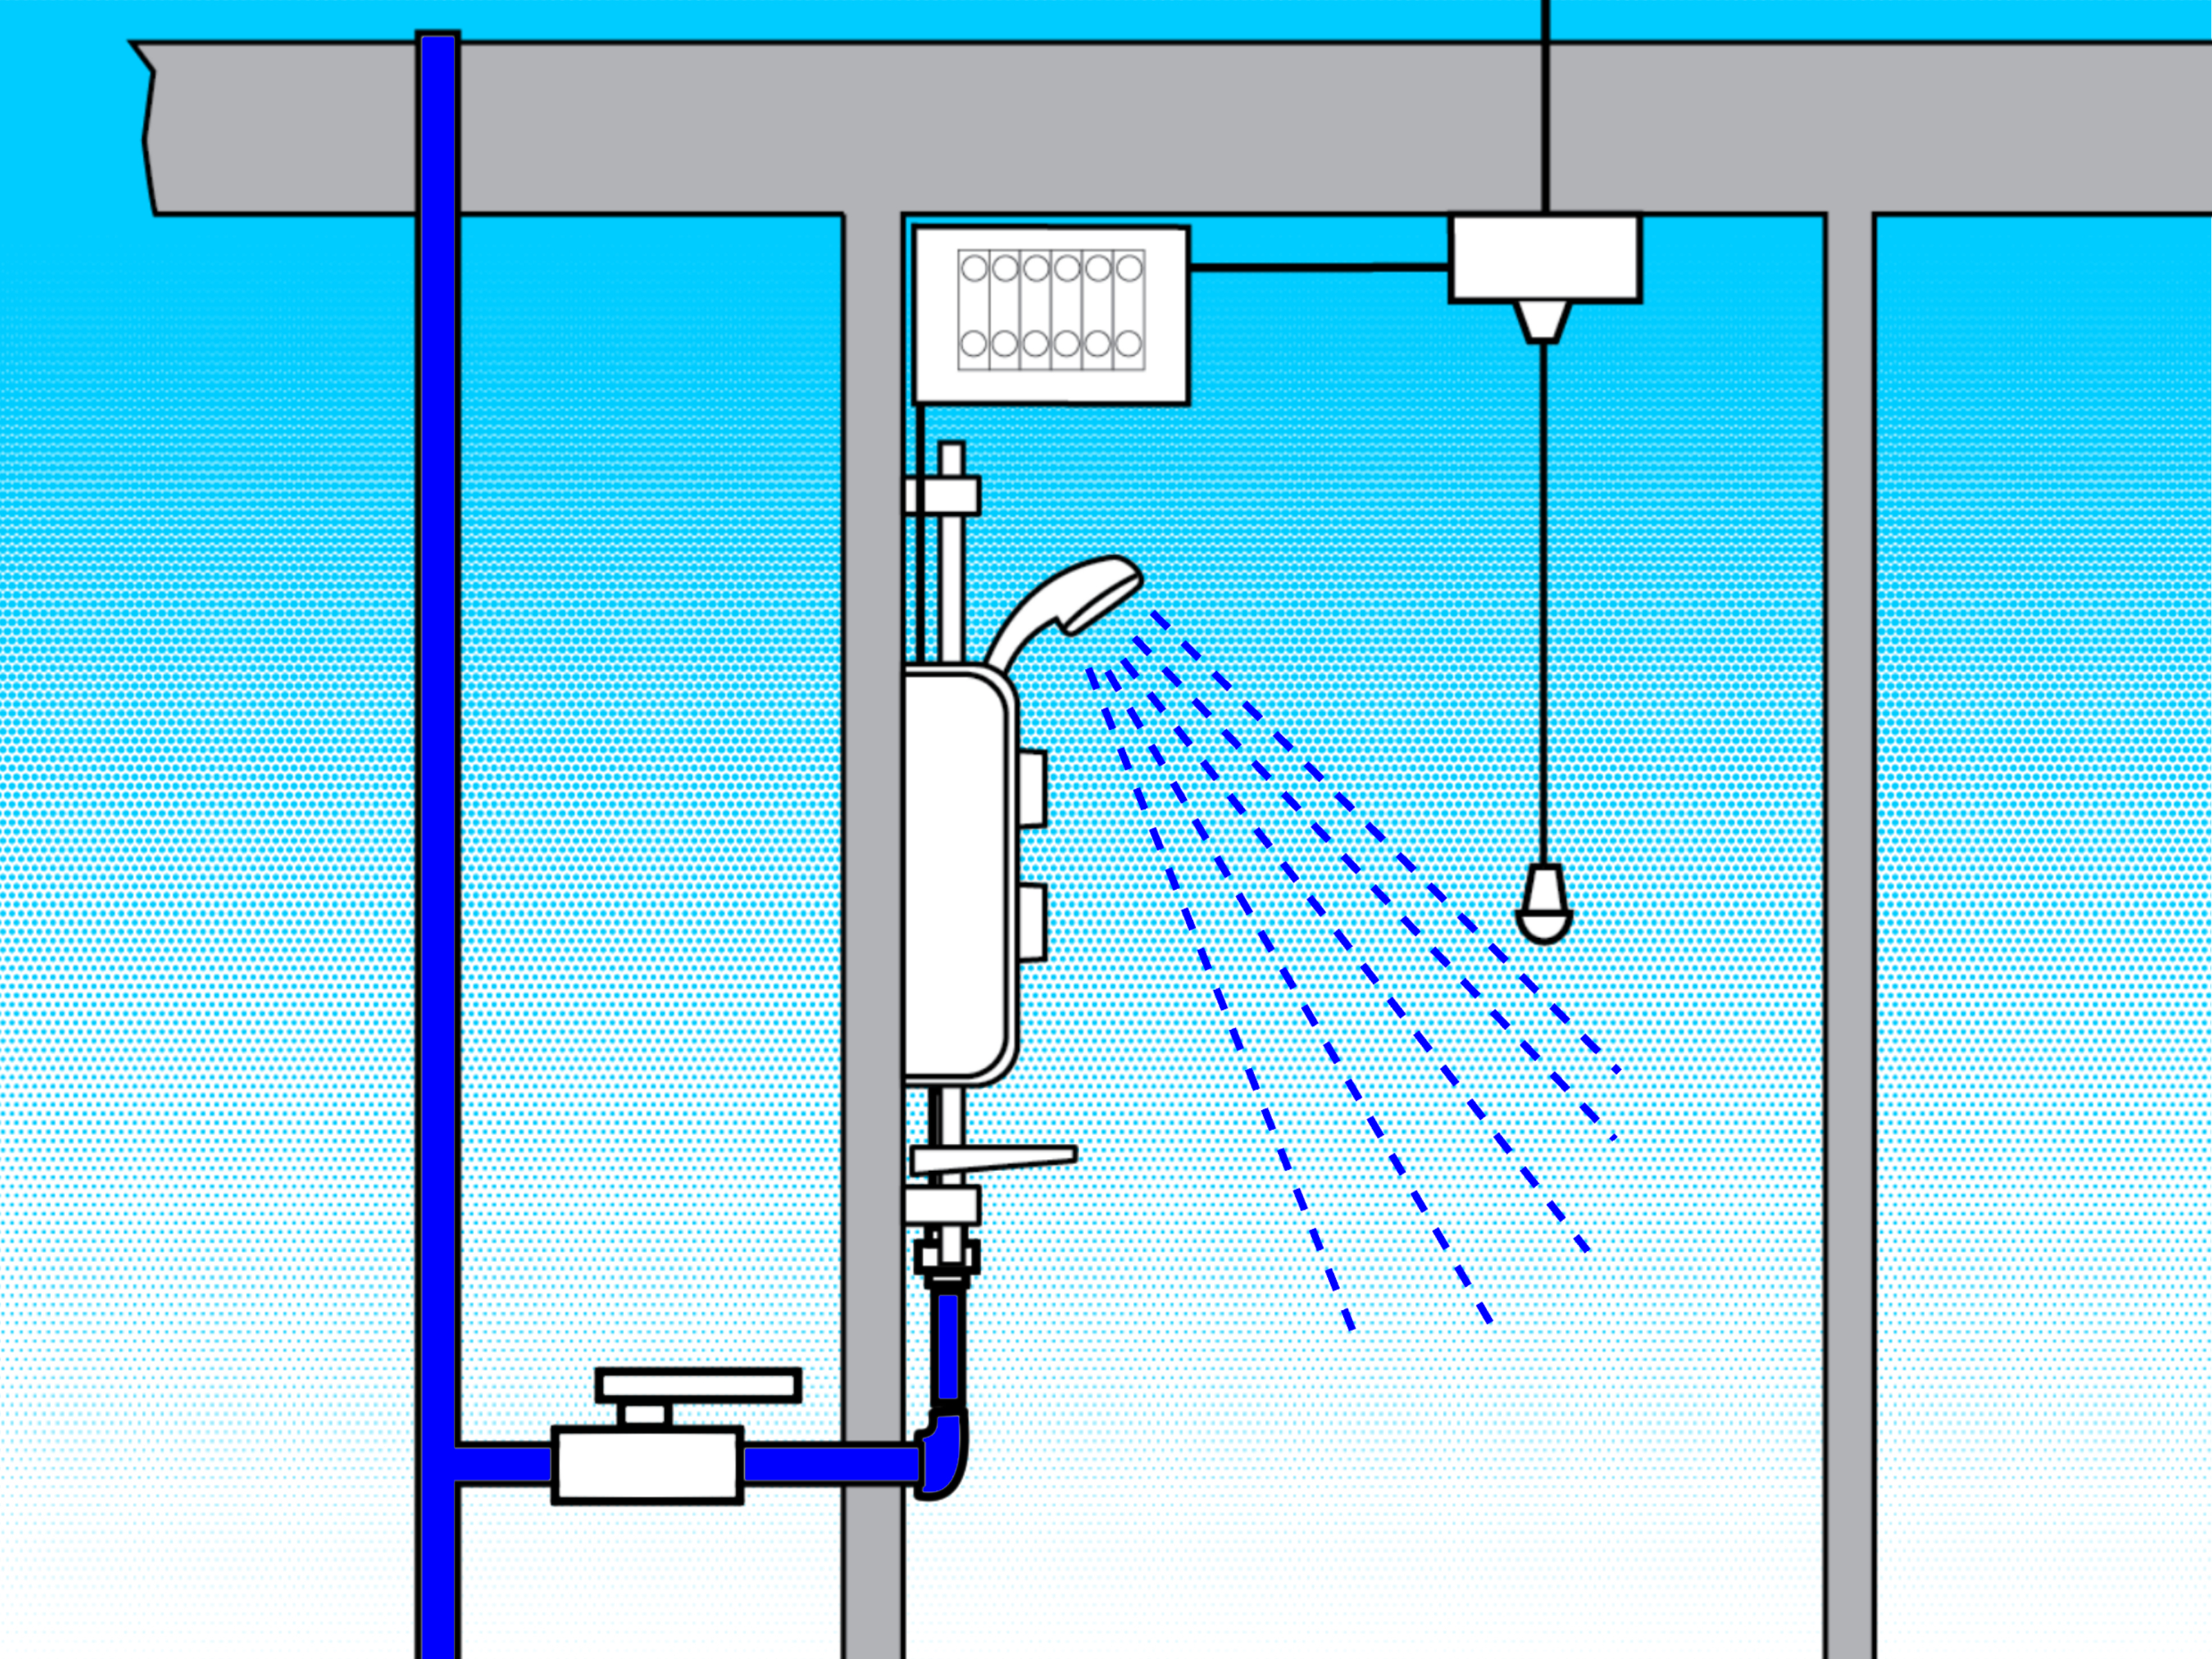 basic home electrical wiring diagram sony deck how to fit an electric shower: 12 steps (with pictures) - wikihow